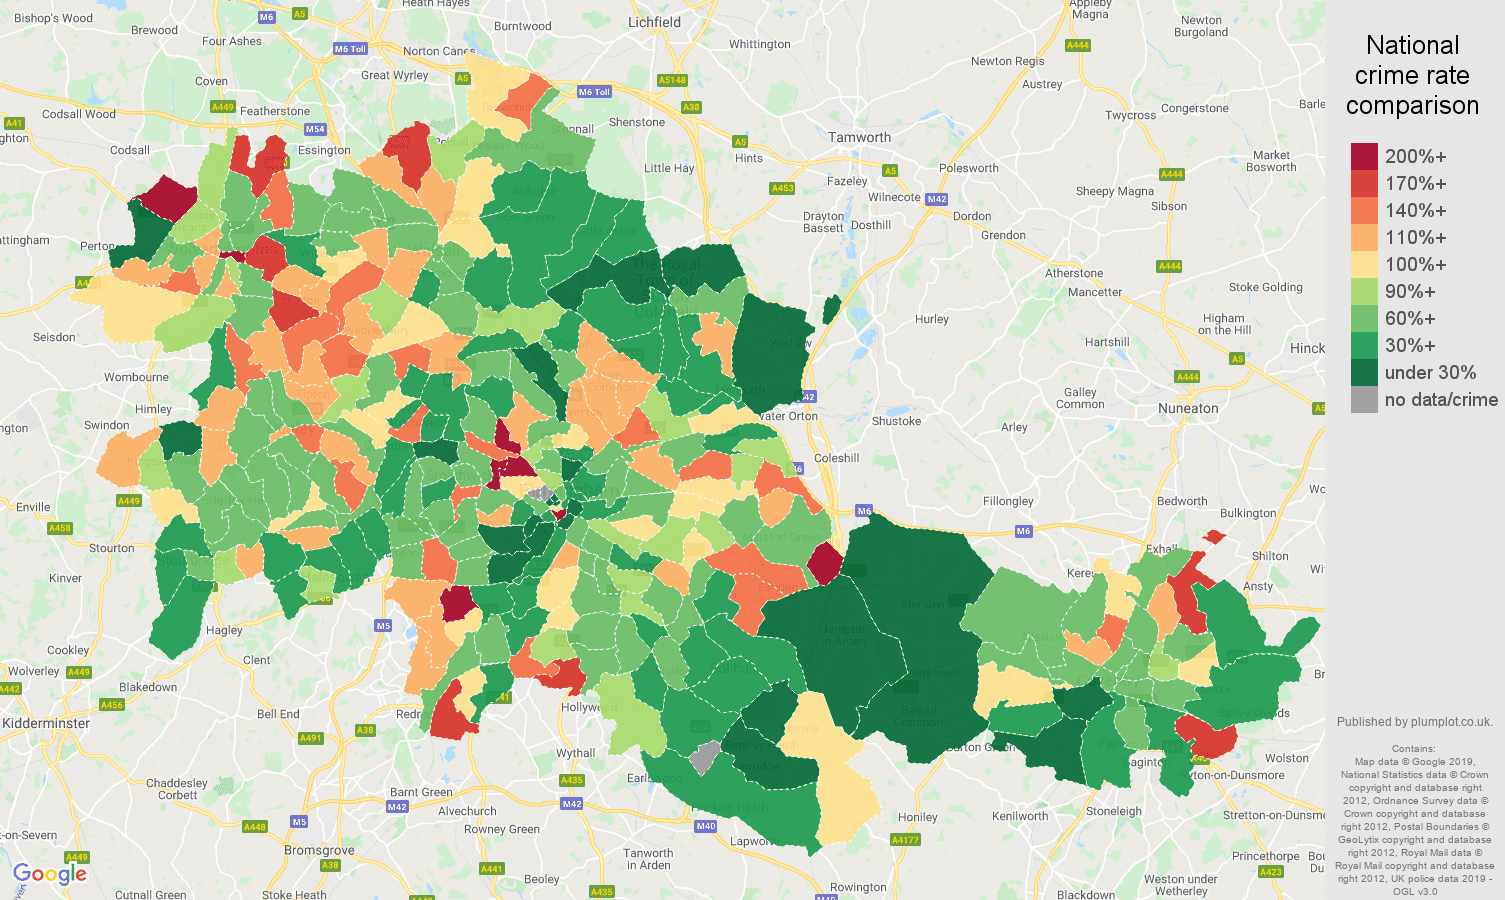 West Midlands county other crime rate comparison map